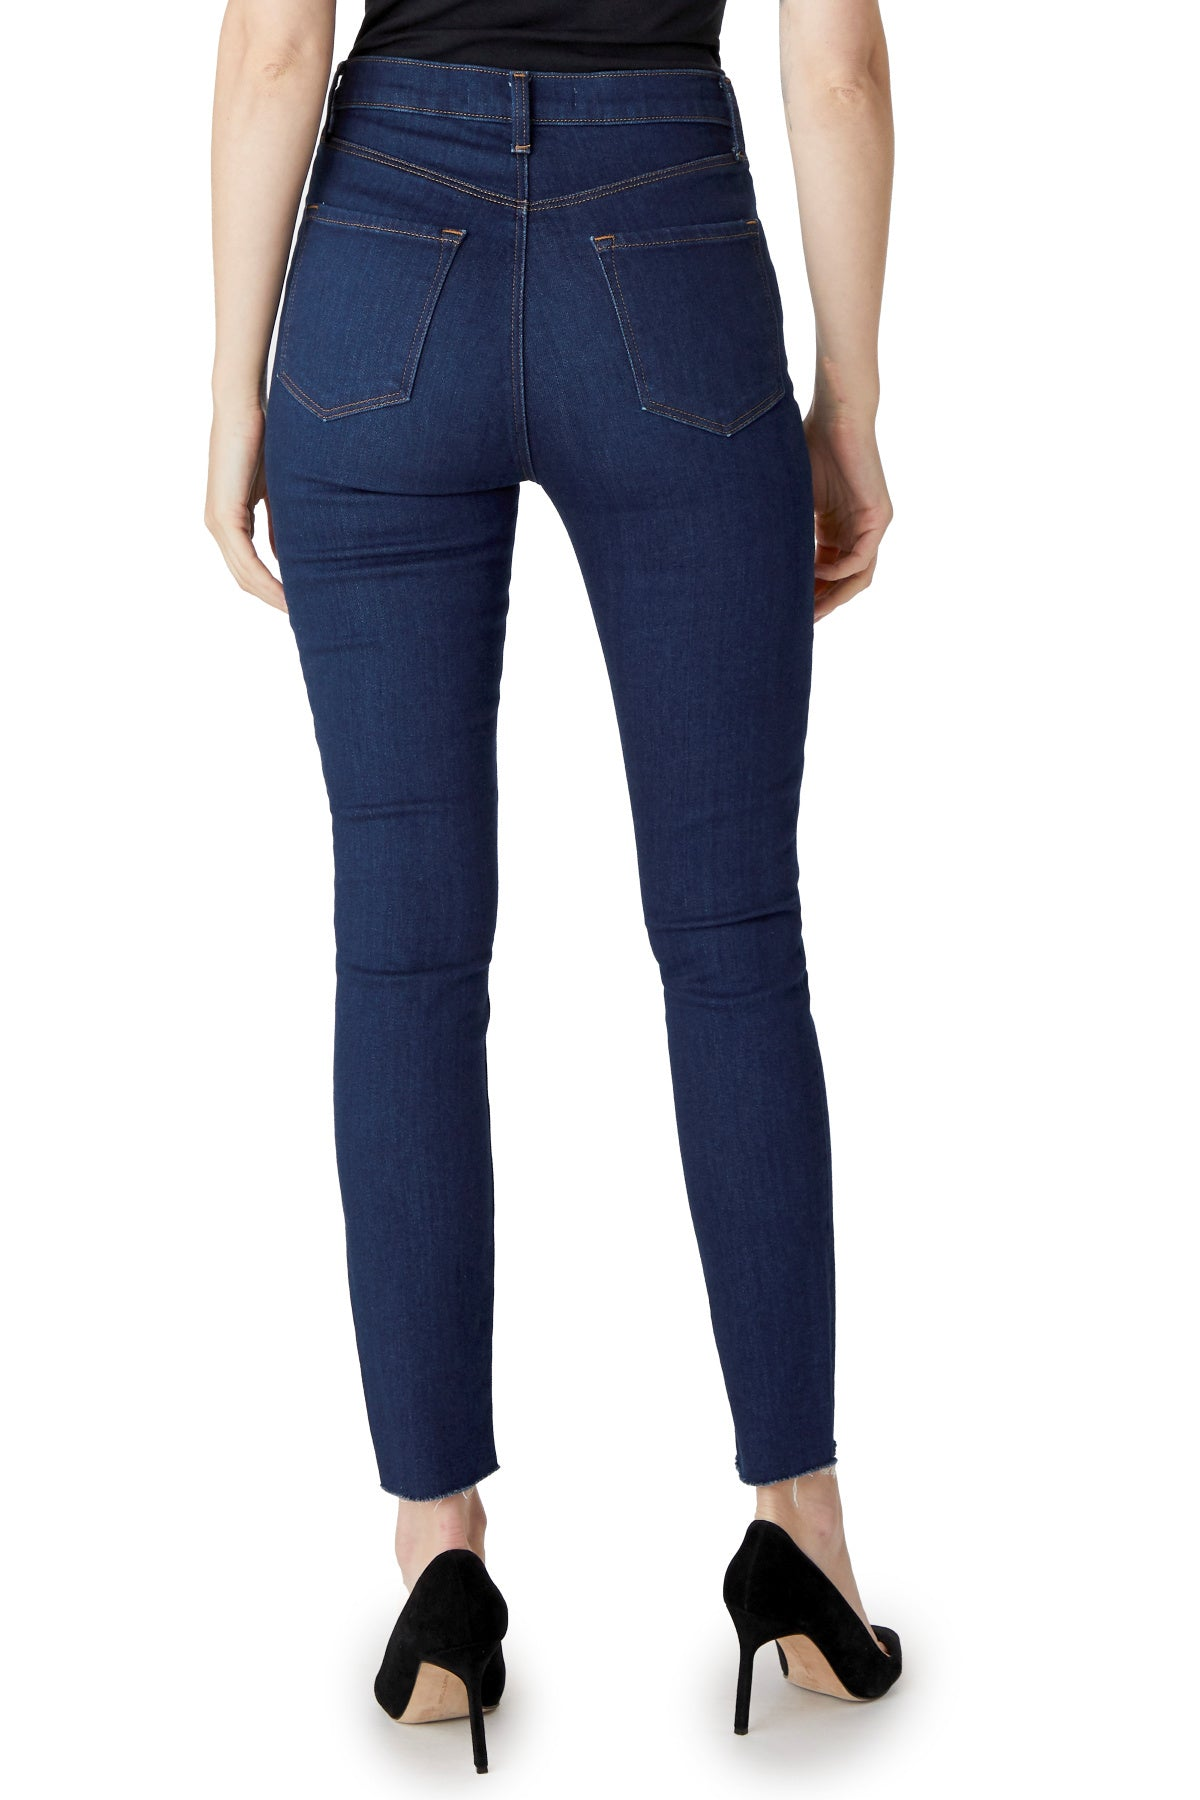 Leenah High Rise Ankle Jean